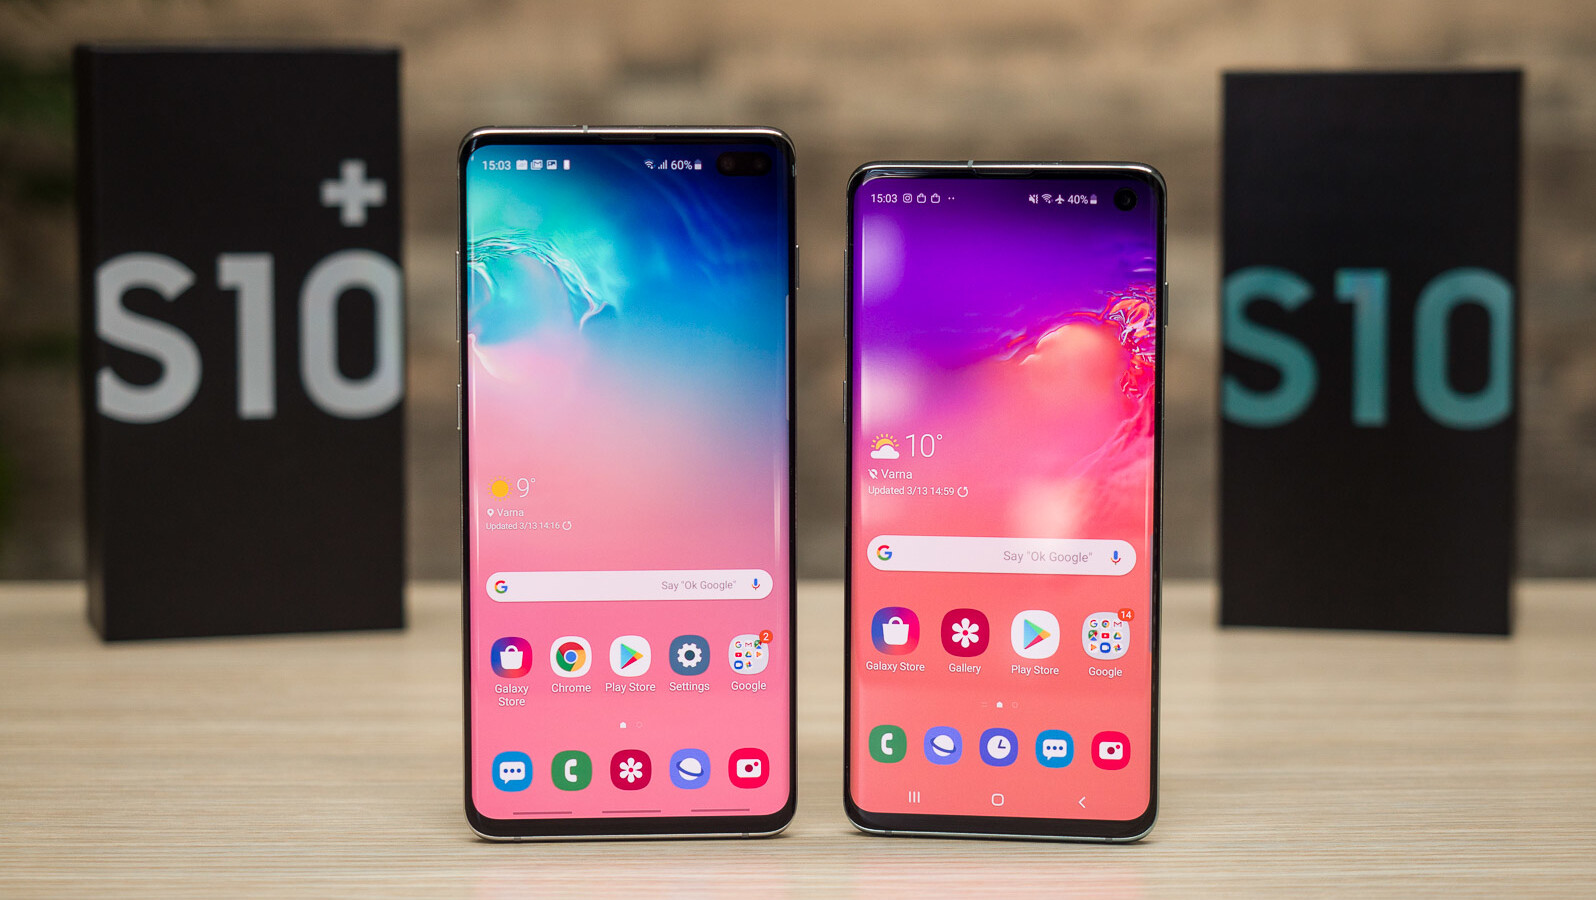 Verizon rolls out new camera features to Samsung Galaxy S10 series